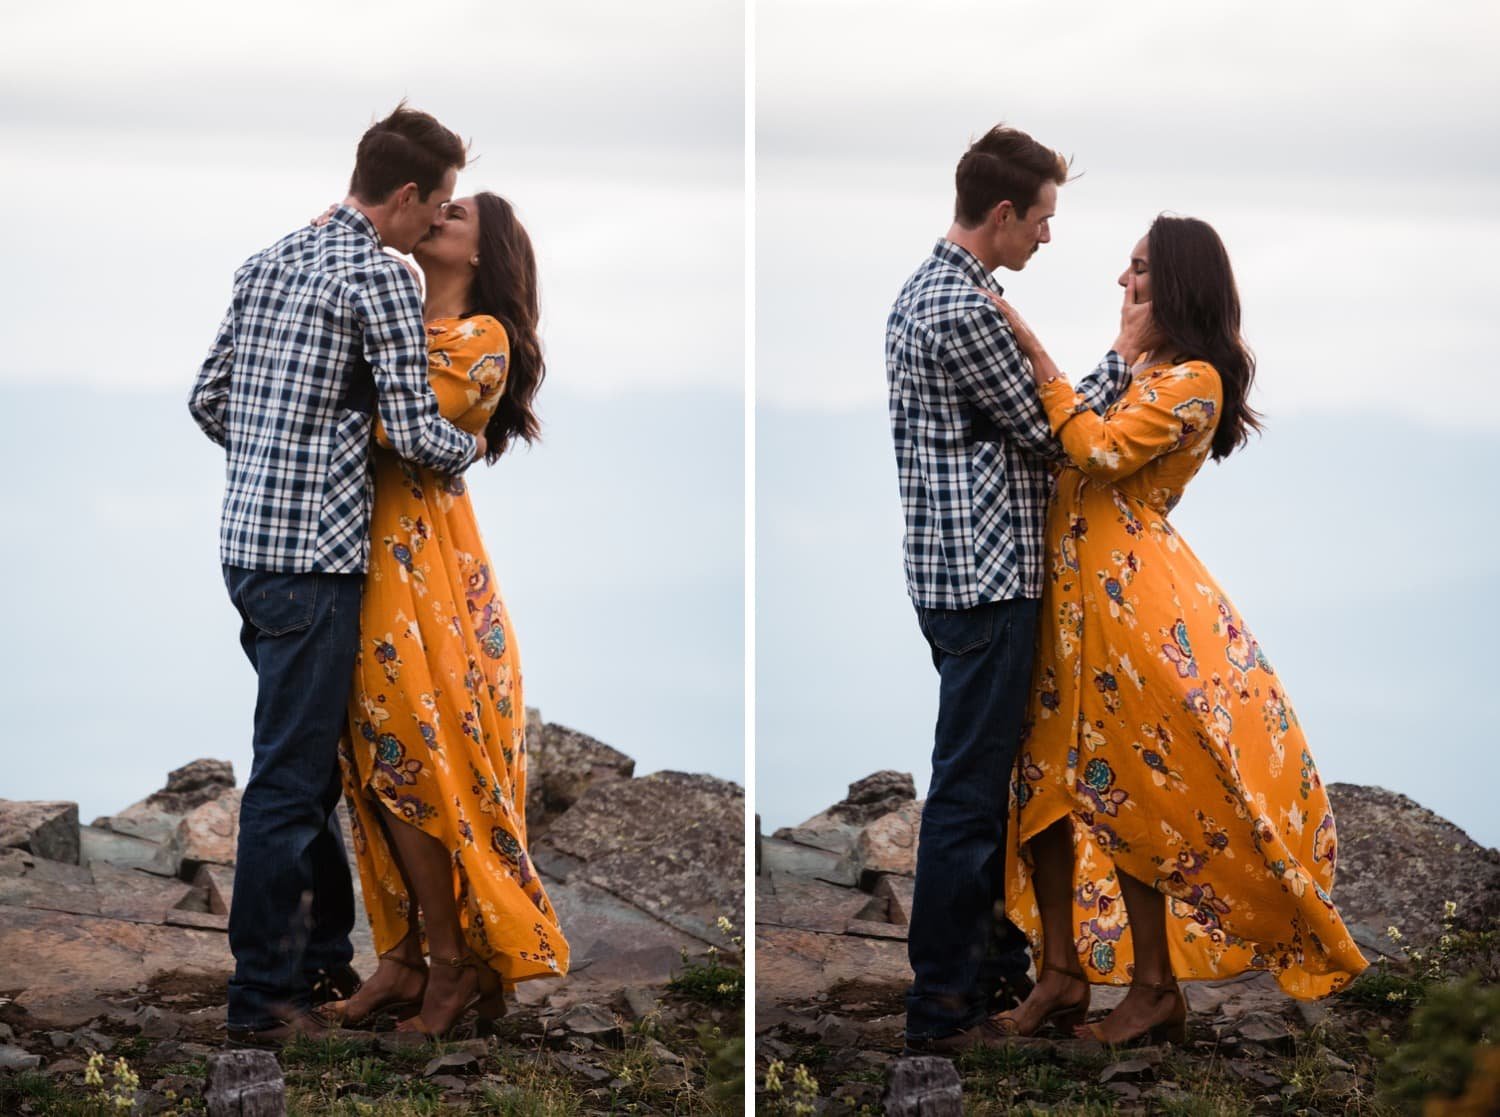 A man wipes the tears off of his fiancé's cheek moments after he asked her to marry him on top of a mountain